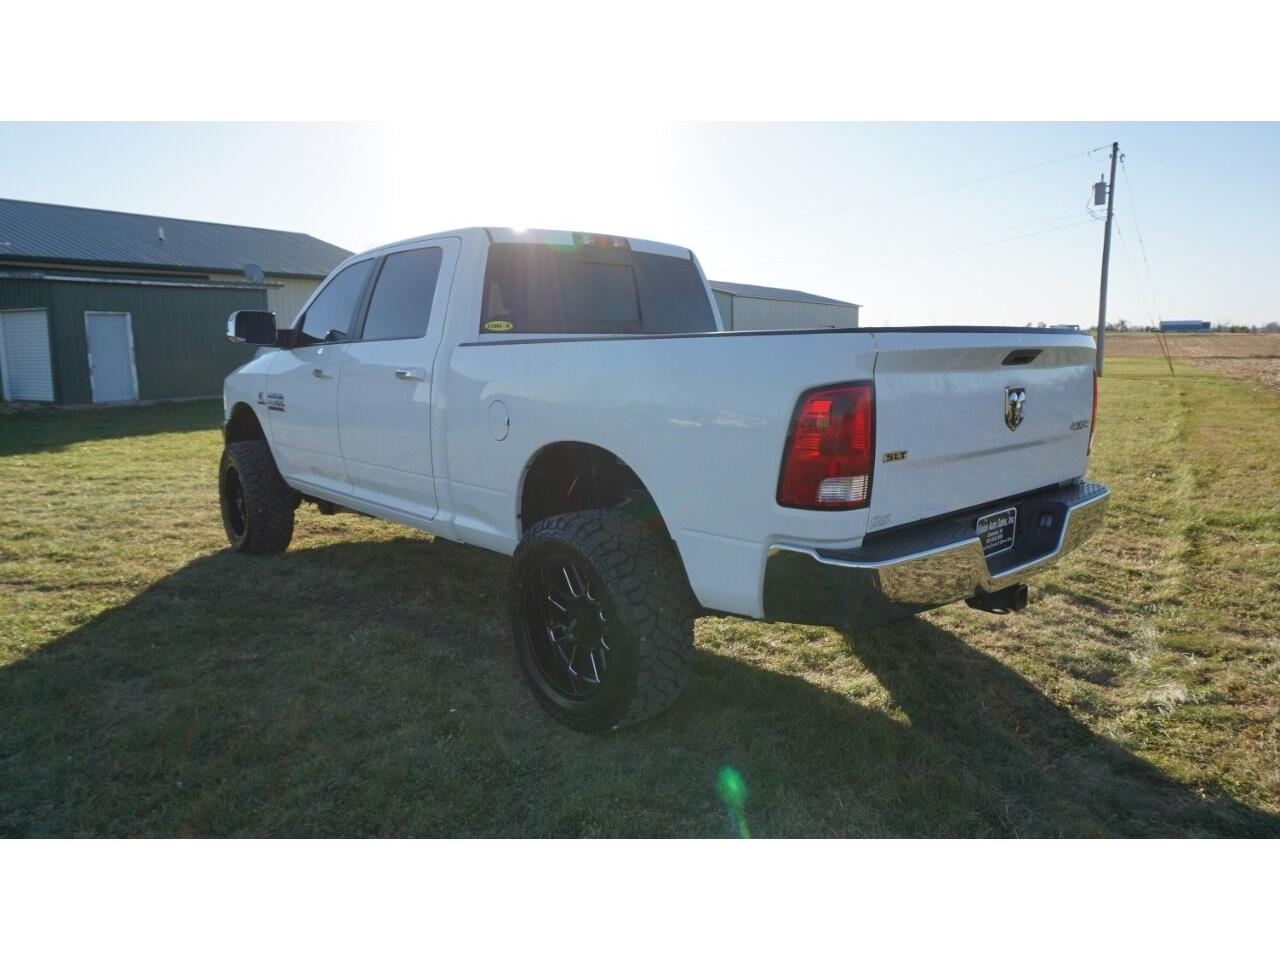 2017 Dodge Ram 2500 (CC-1419898) for sale in Clarence, Iowa